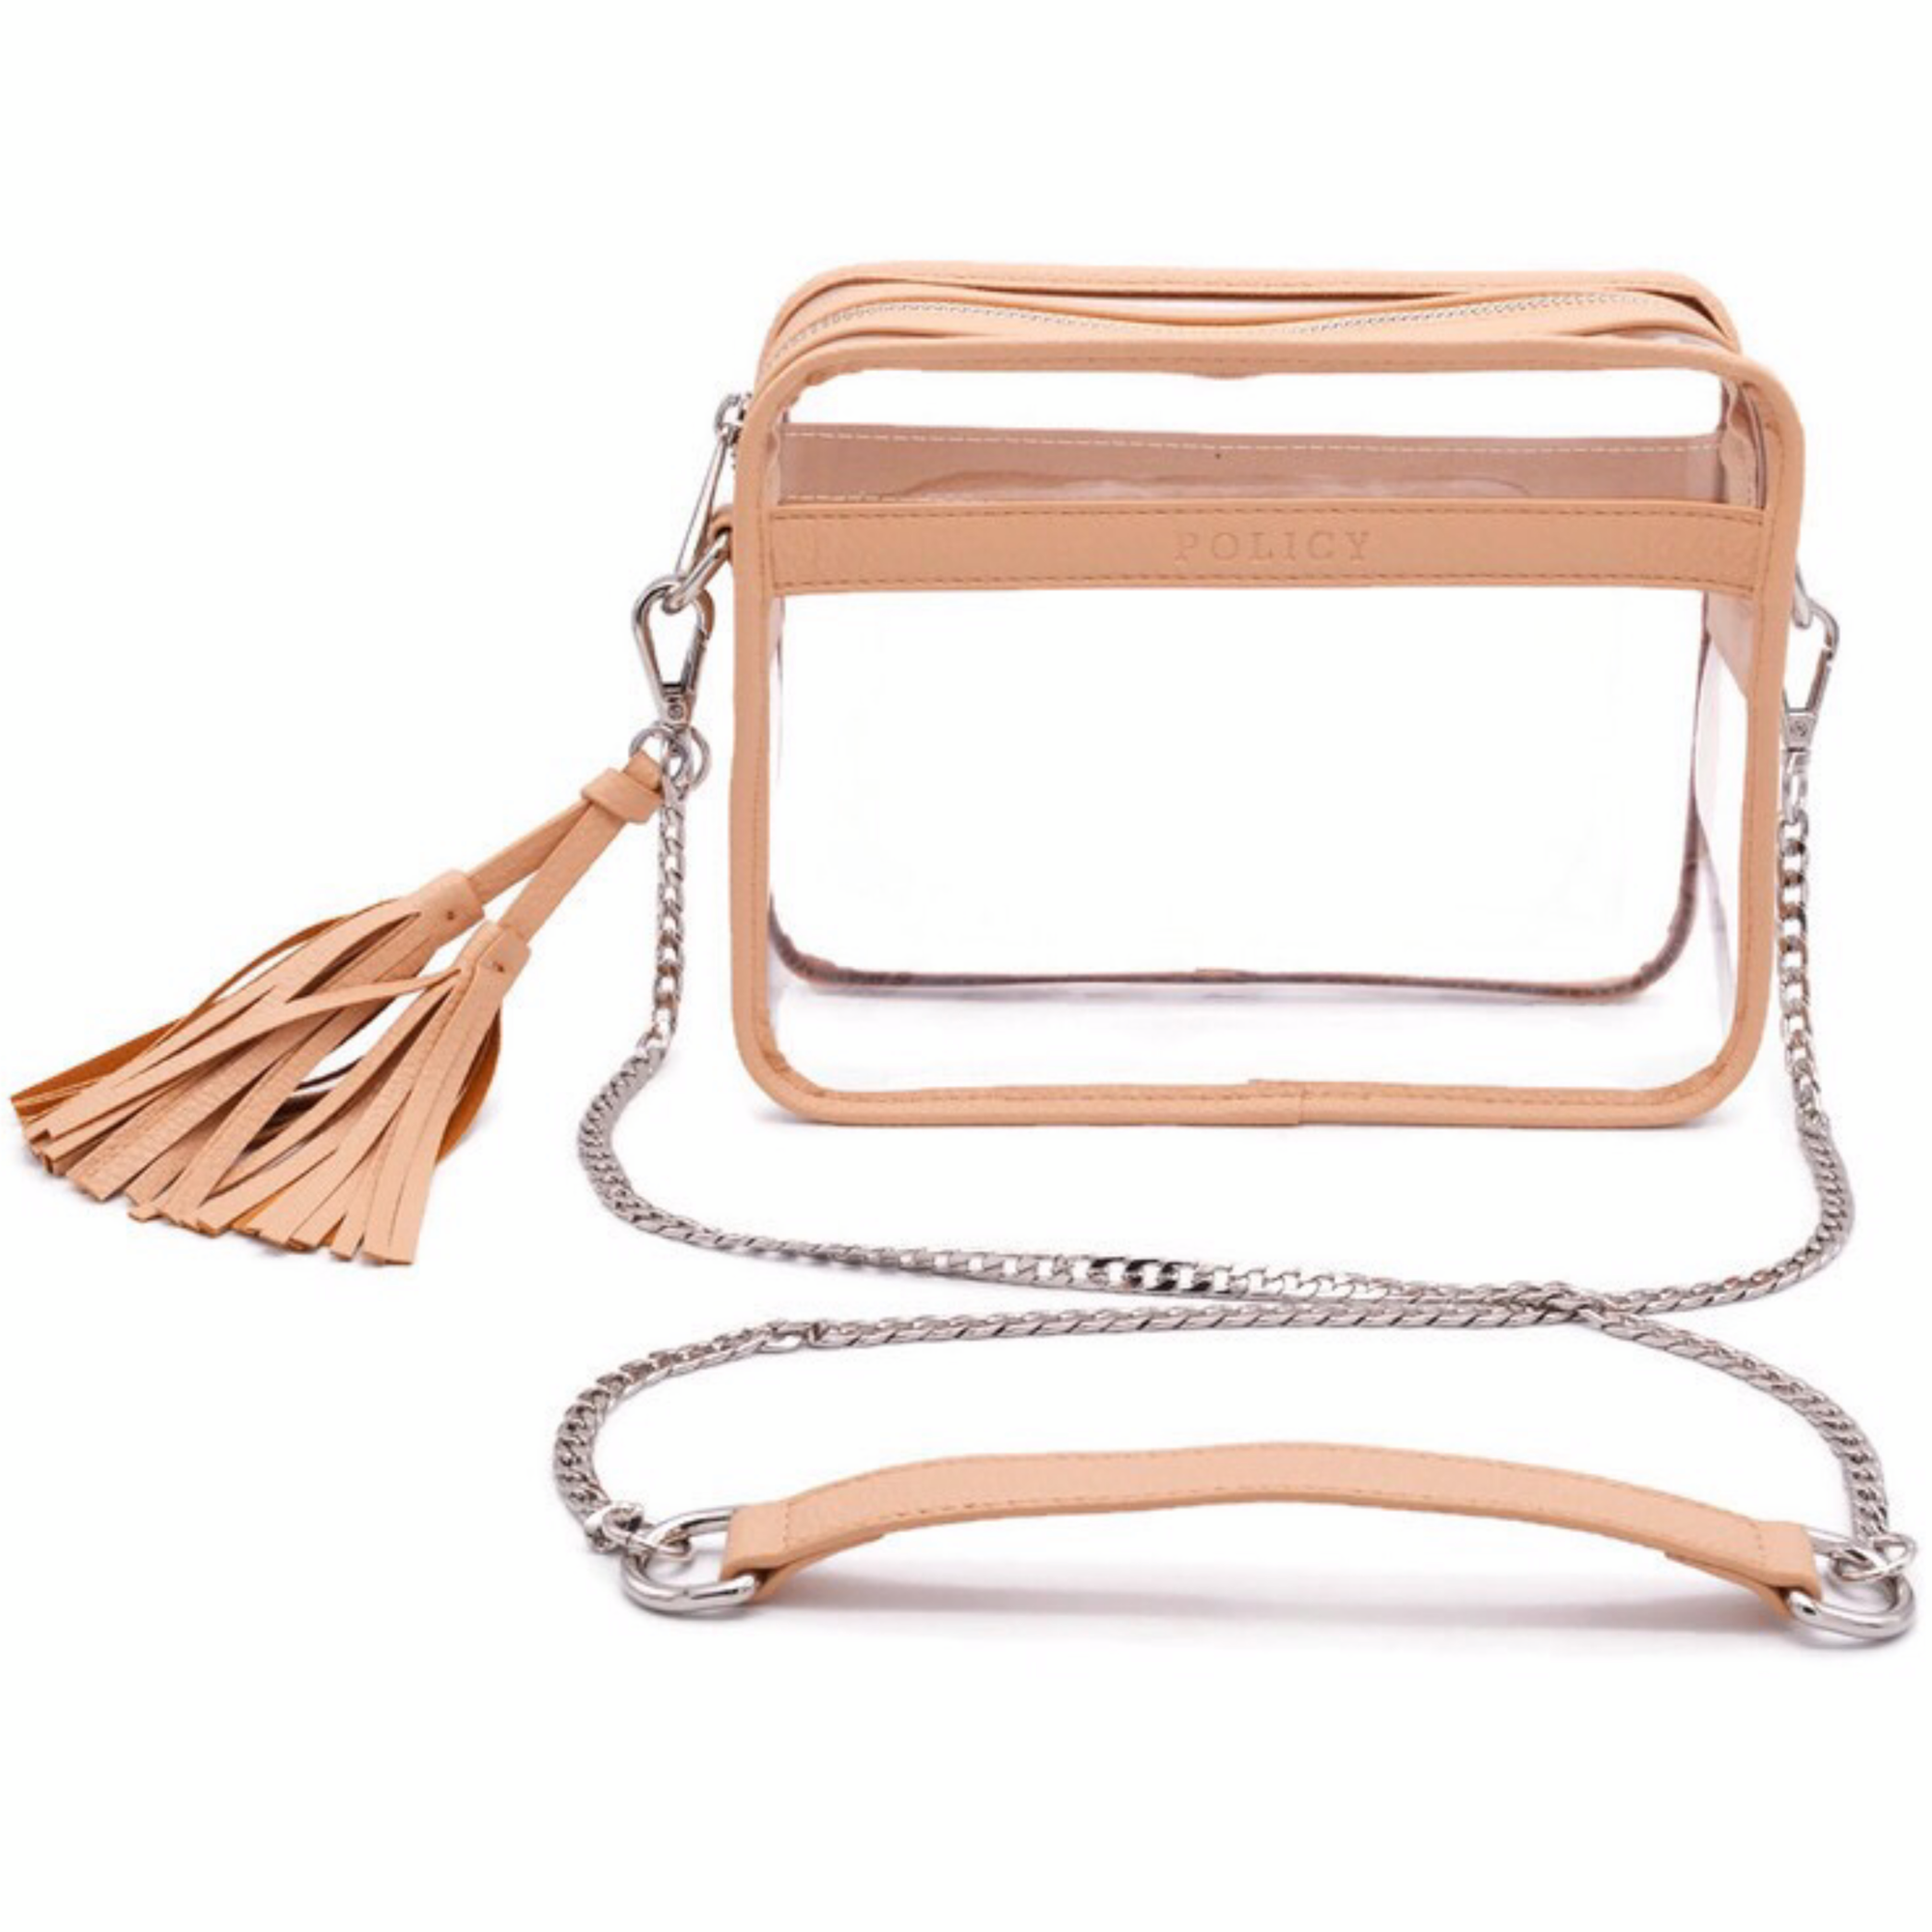 The Basic Bare | Sand POLICY Handbags